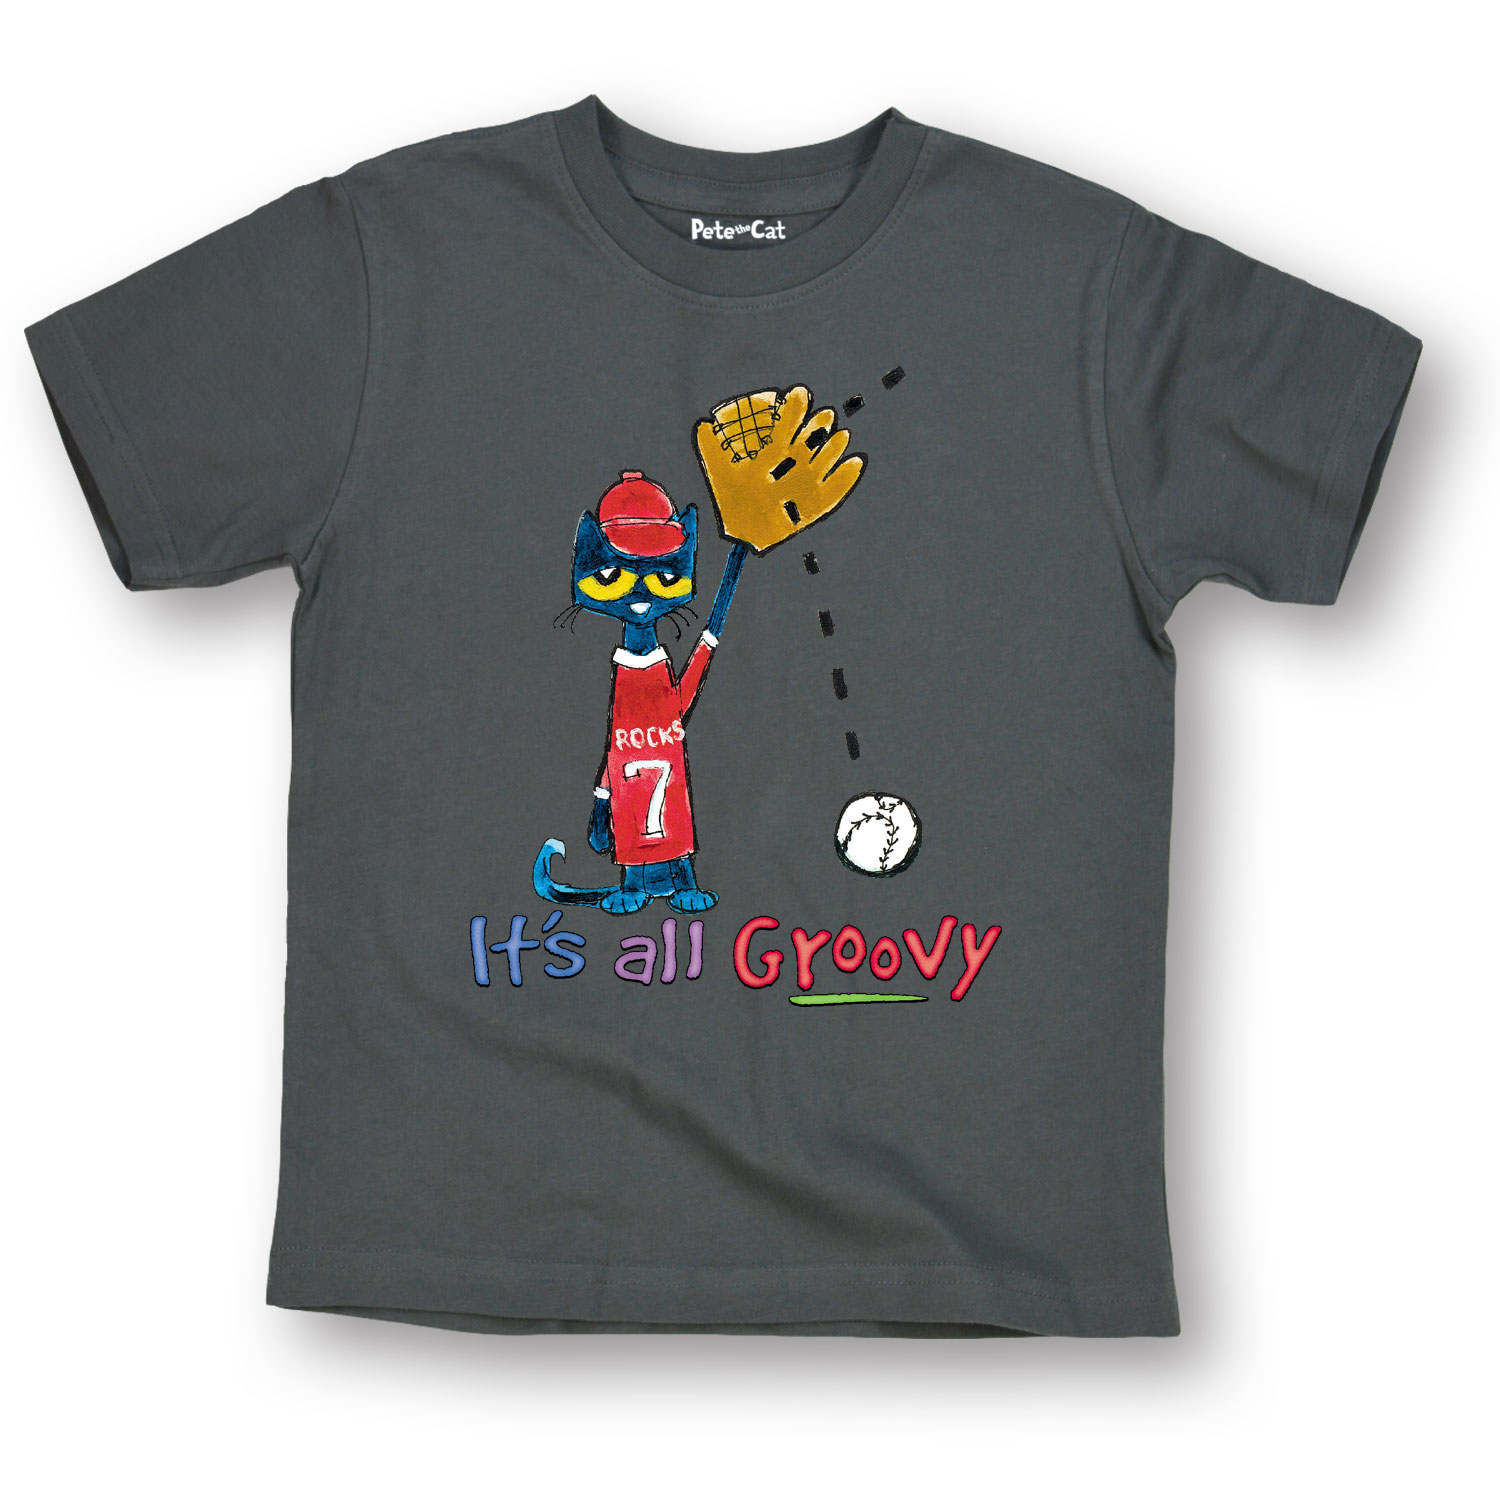 Pete the Cat Officially Licensed Book Character Baseball All Groovy Youth Tee